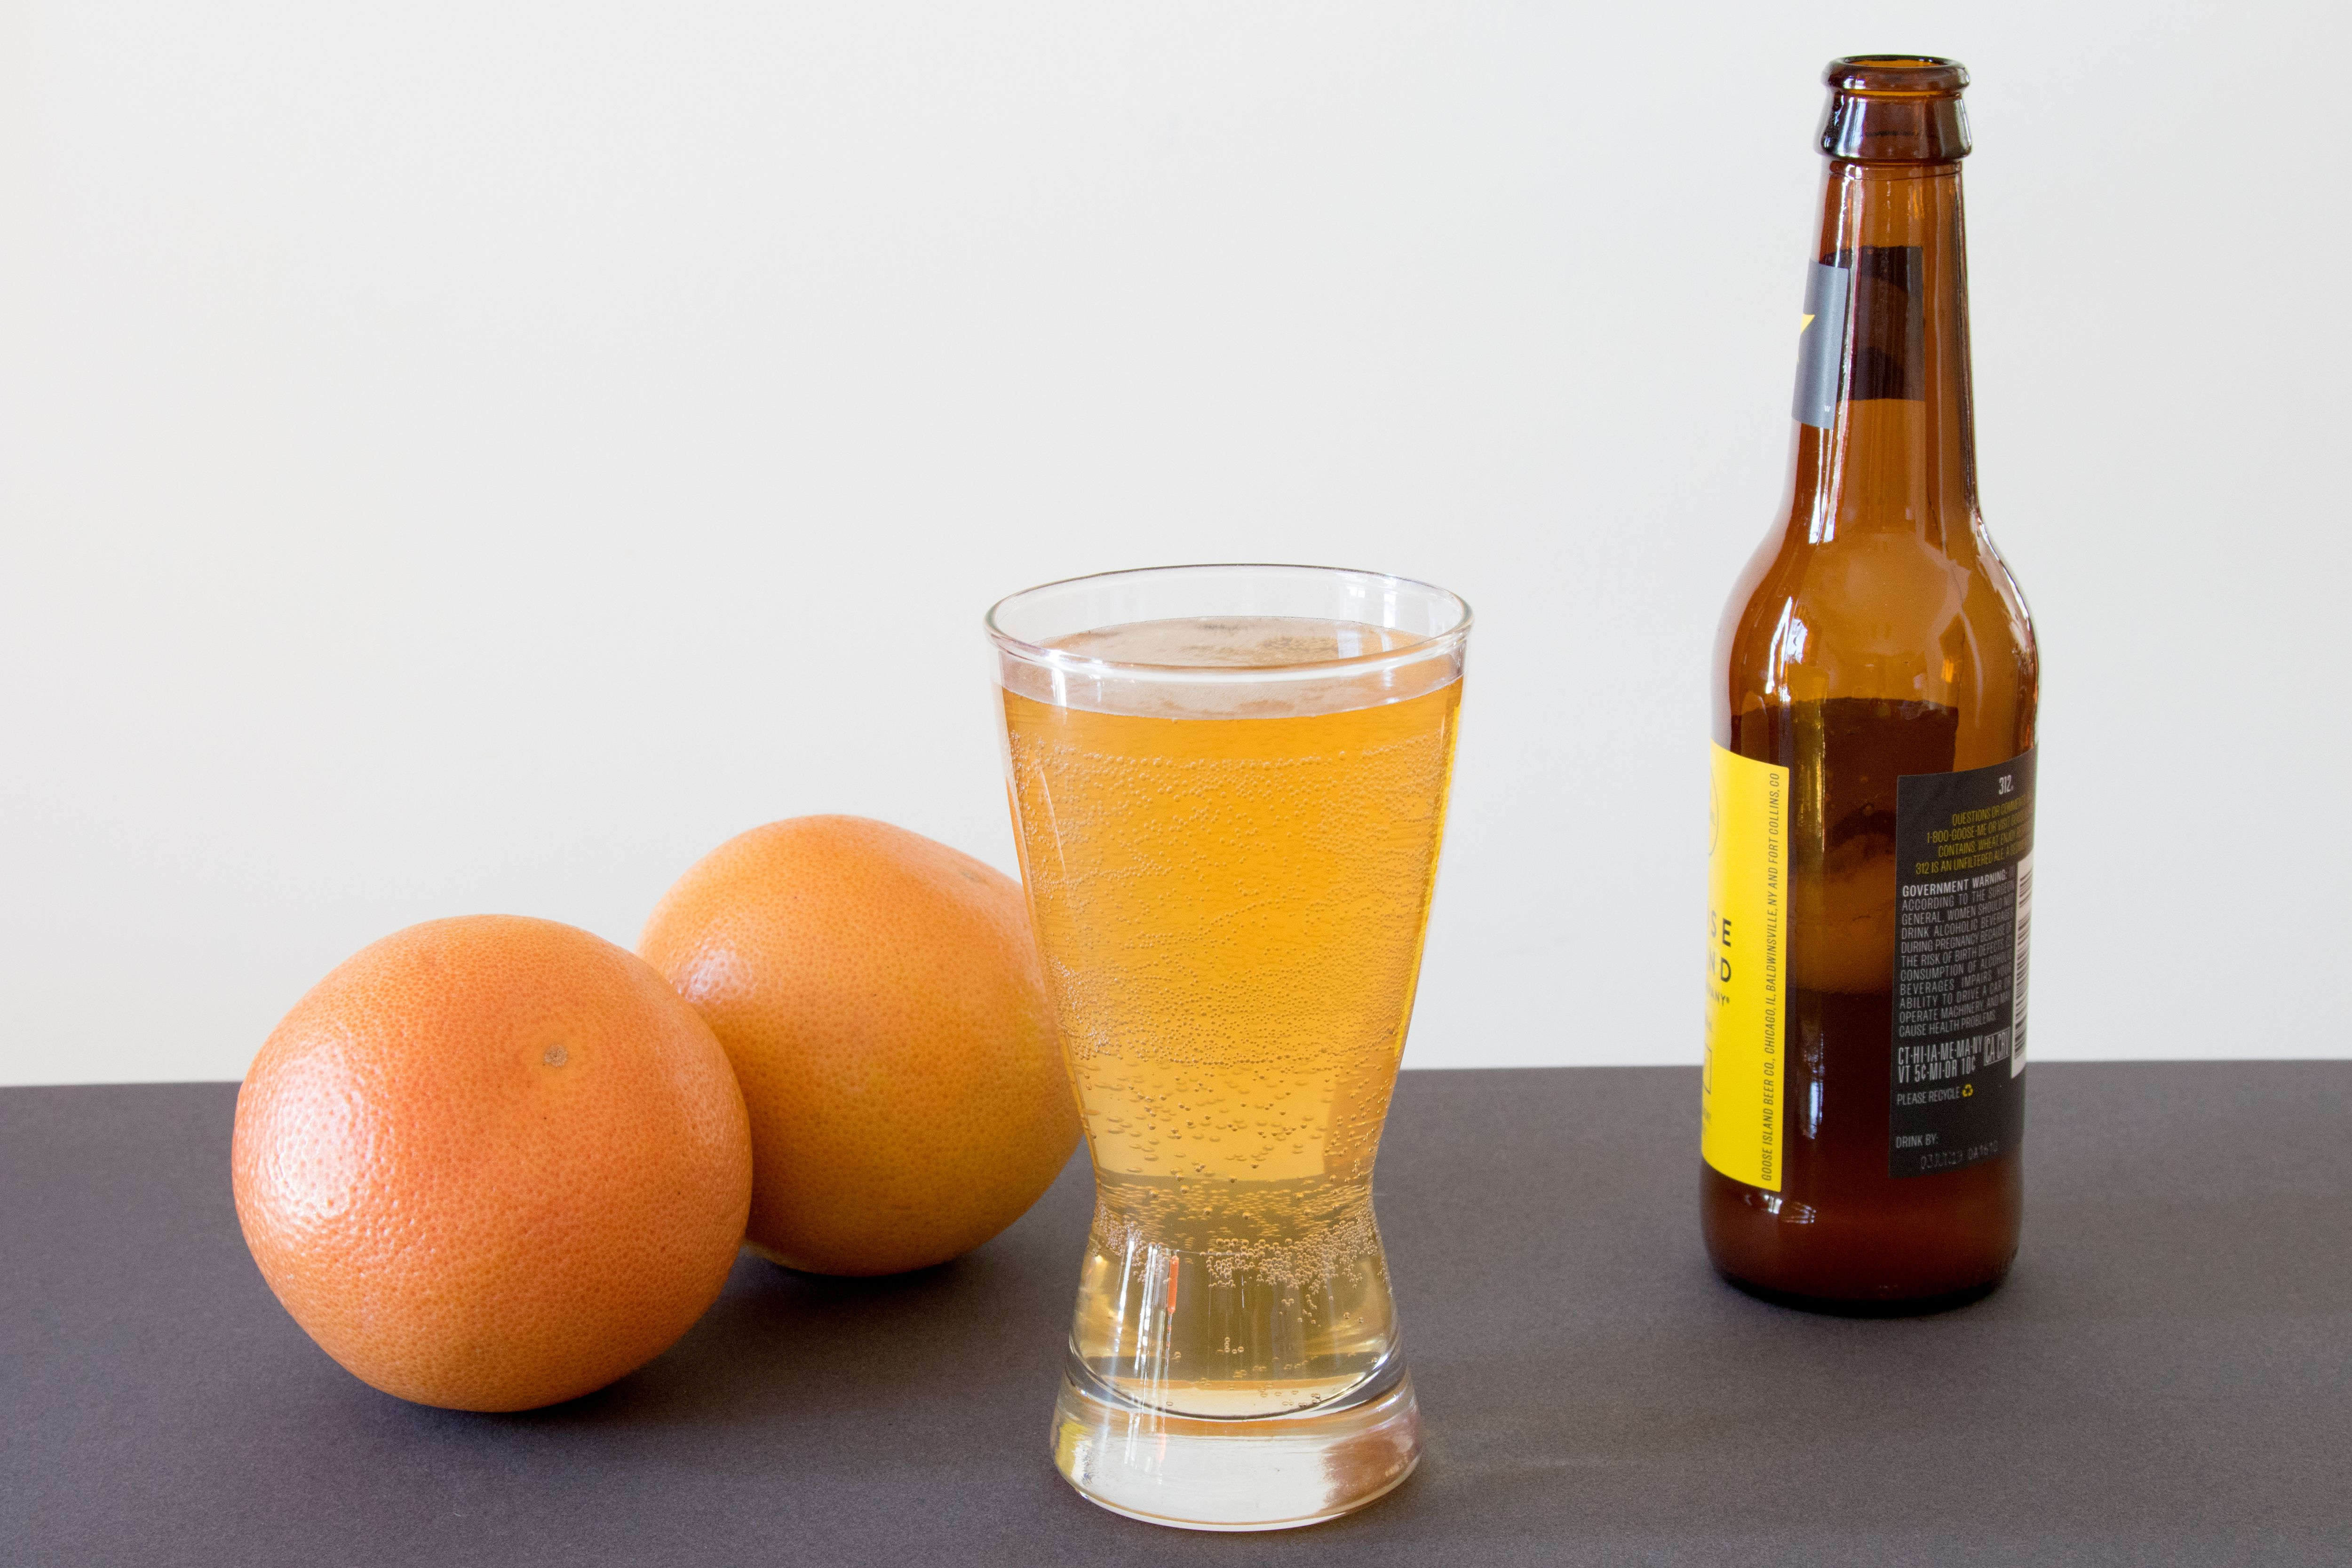 Pouring Wheat Beer for a Grapefruit Shandy